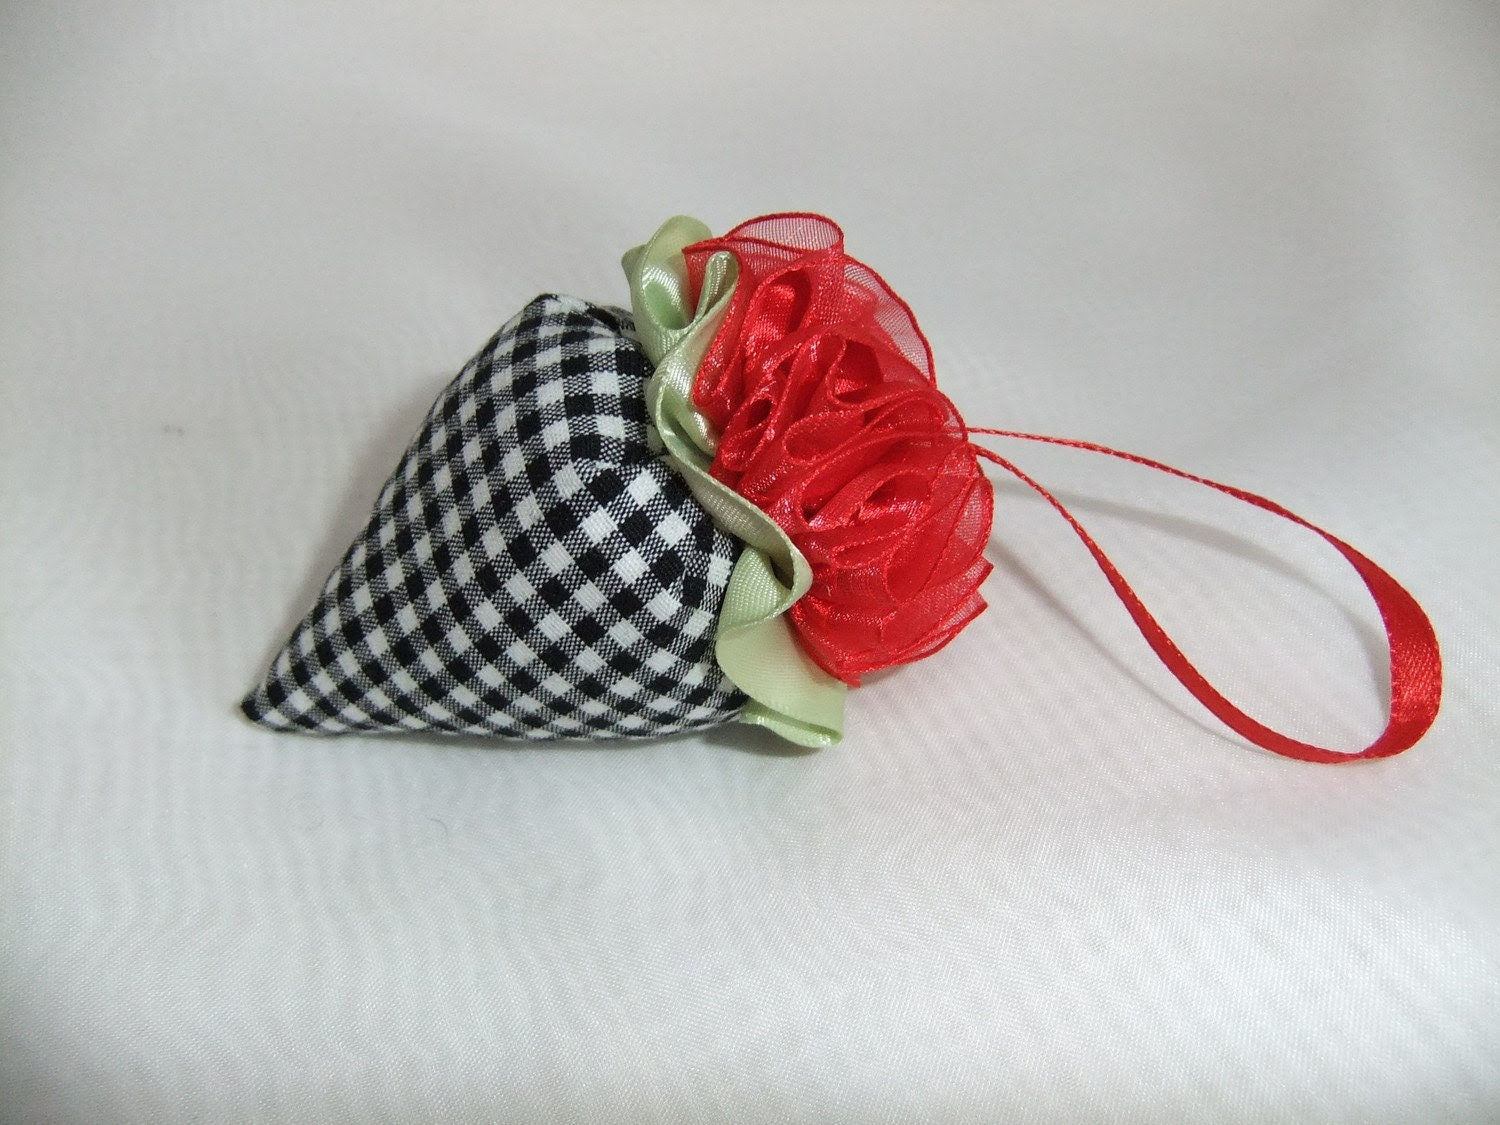 Lavender Filled Sachet/Ornament Pincushion - Strawberry Style - 3 inches Long